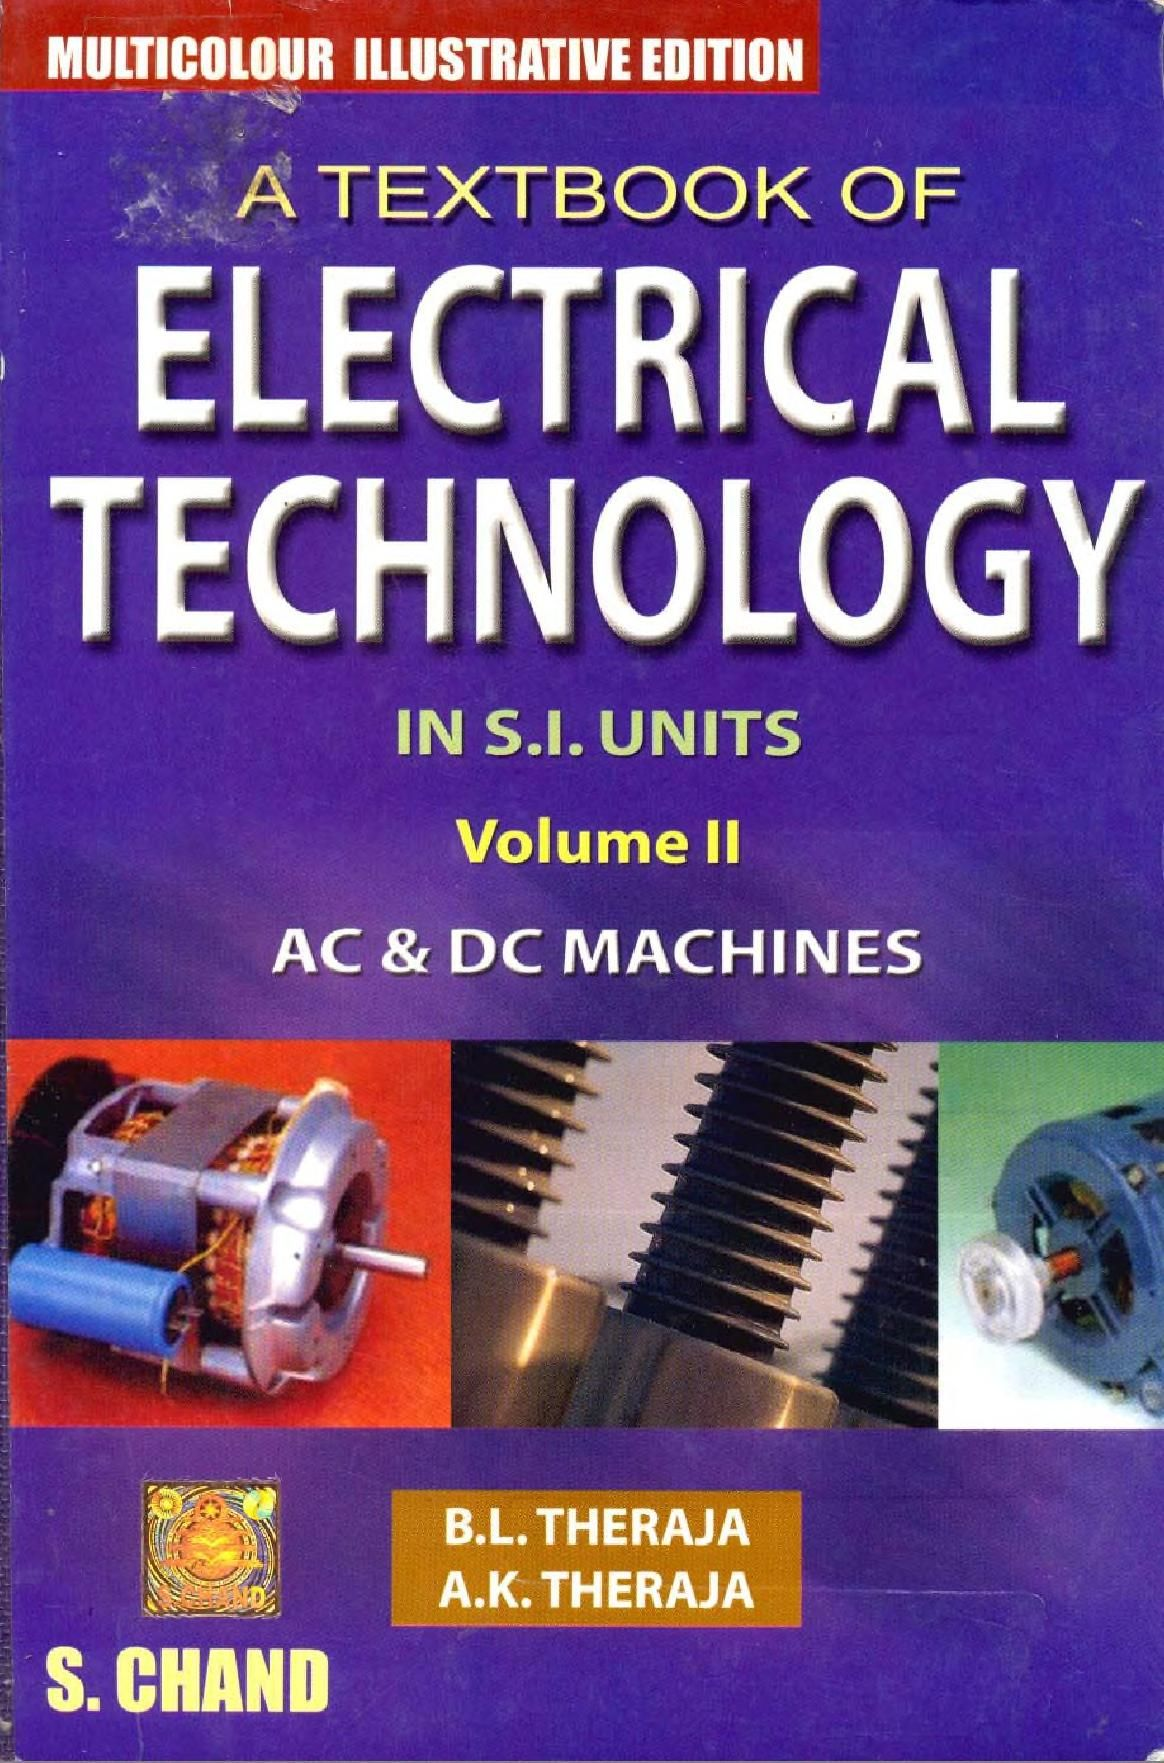 A Textbook Of Electrical Technology B L Theraja Volume Ii None Free Download Borrow And Streaming Internet Archive Electrical Engineering Books Electrical Engineering Technology Basic Electrical Engineering